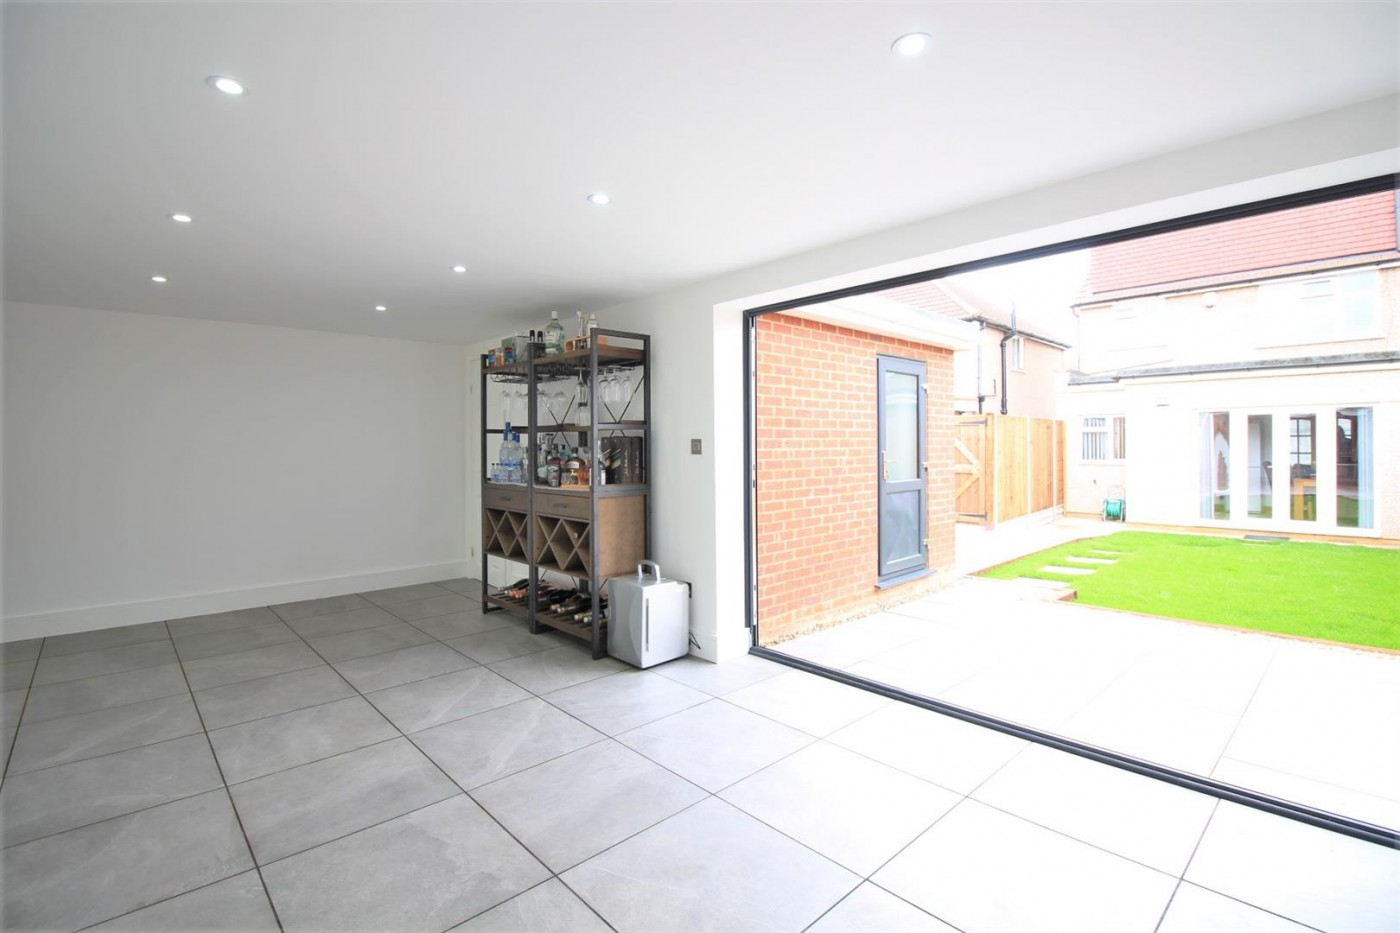 Images for Browning Way, Heston, TW5